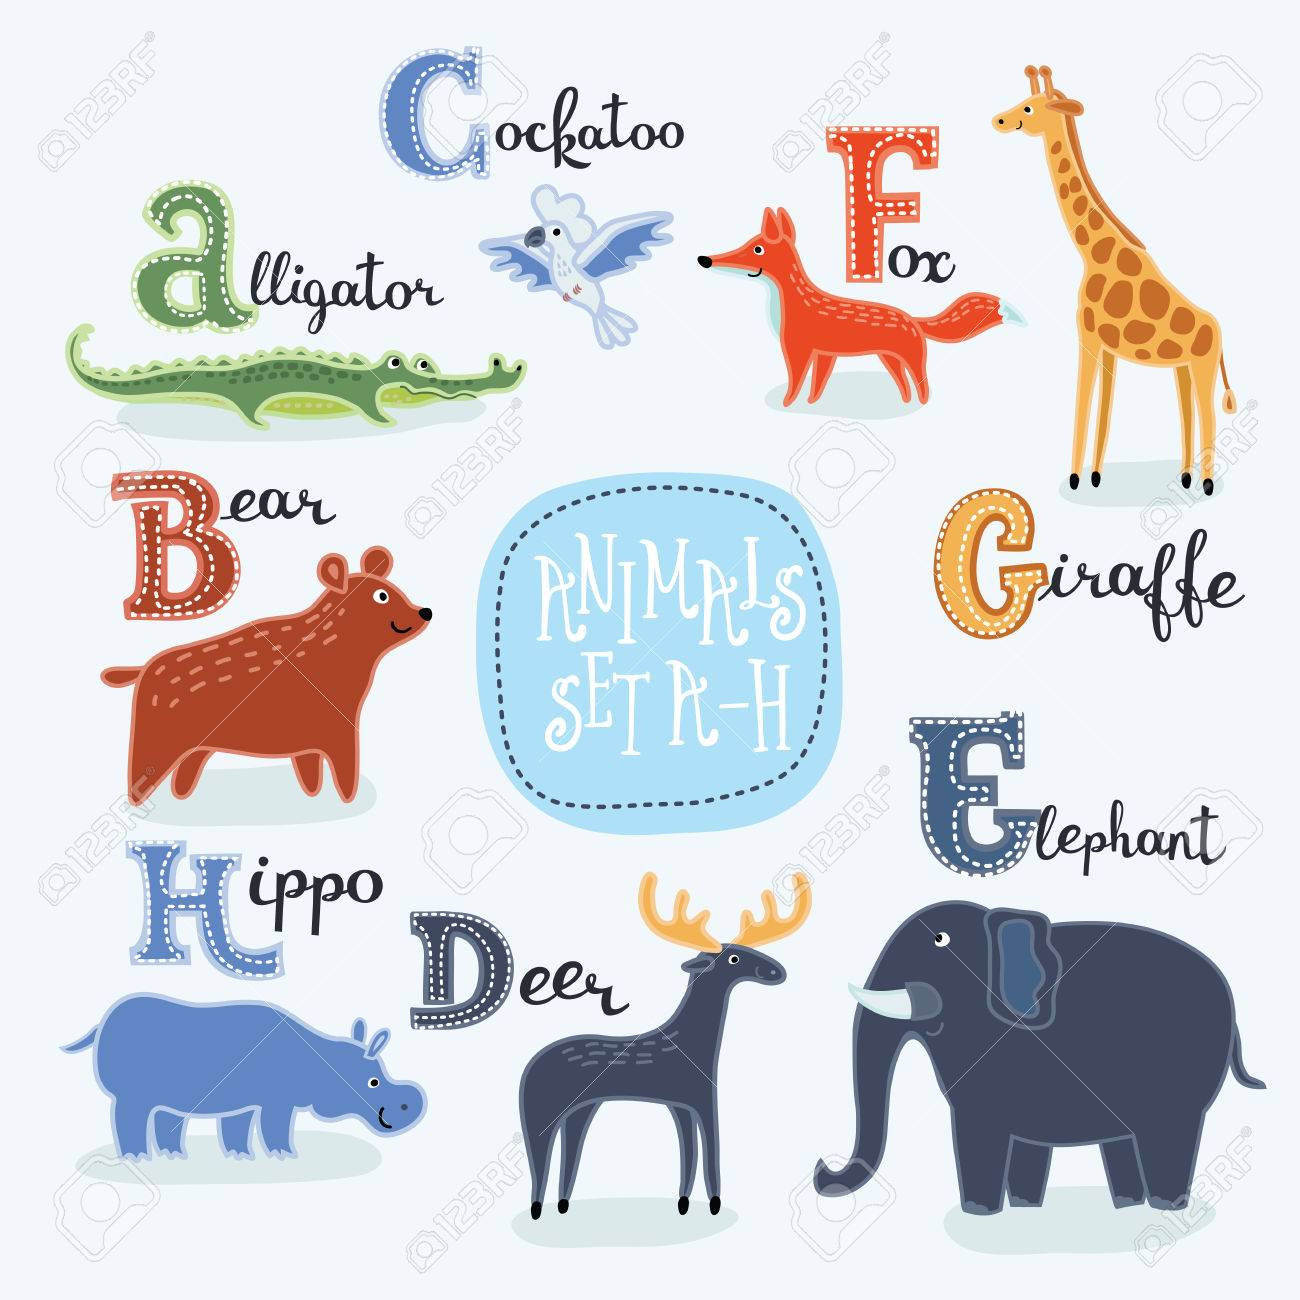 Image of: Vector Illustration Illustration Of Alphabet Animals From To With Latin Names Stock Vector 59834703 123rfcom Illustration Of Alphabet Animals From To With Latin Names